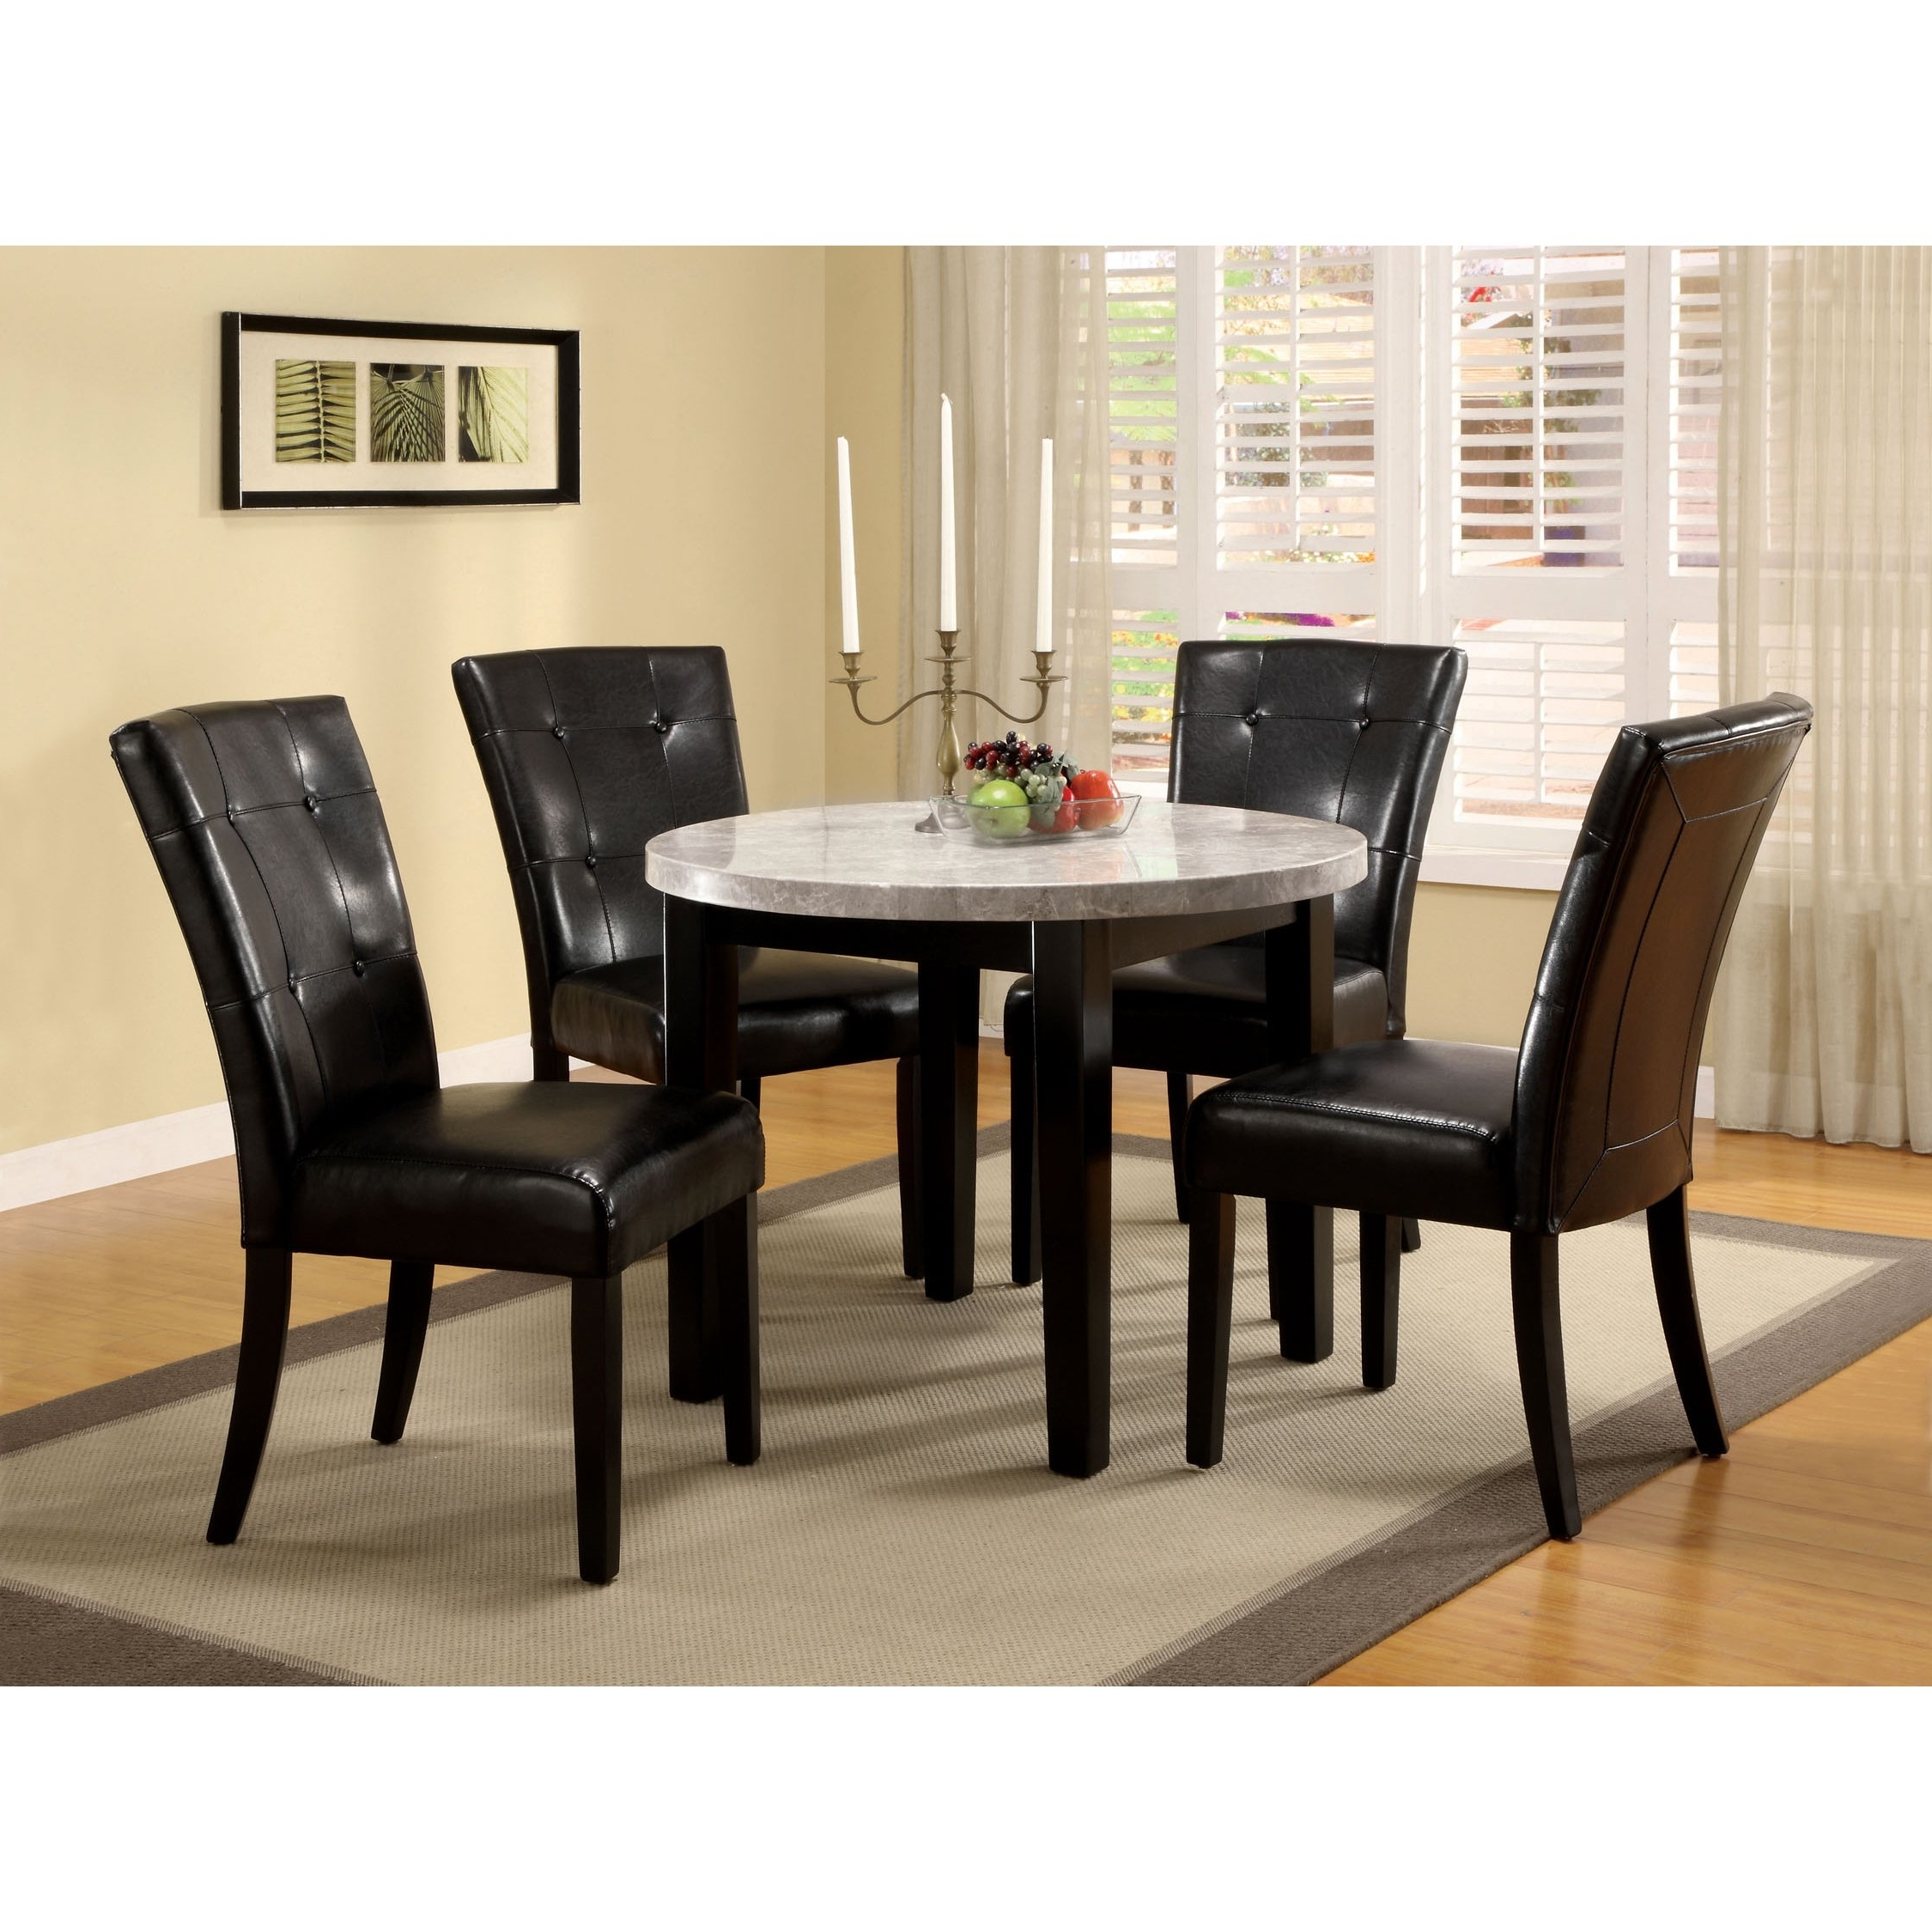 Shop Furniture Of America Perican Round 5 Piece Genuine Marble In Popular Marble Dining Chairs (View 25 of 25)